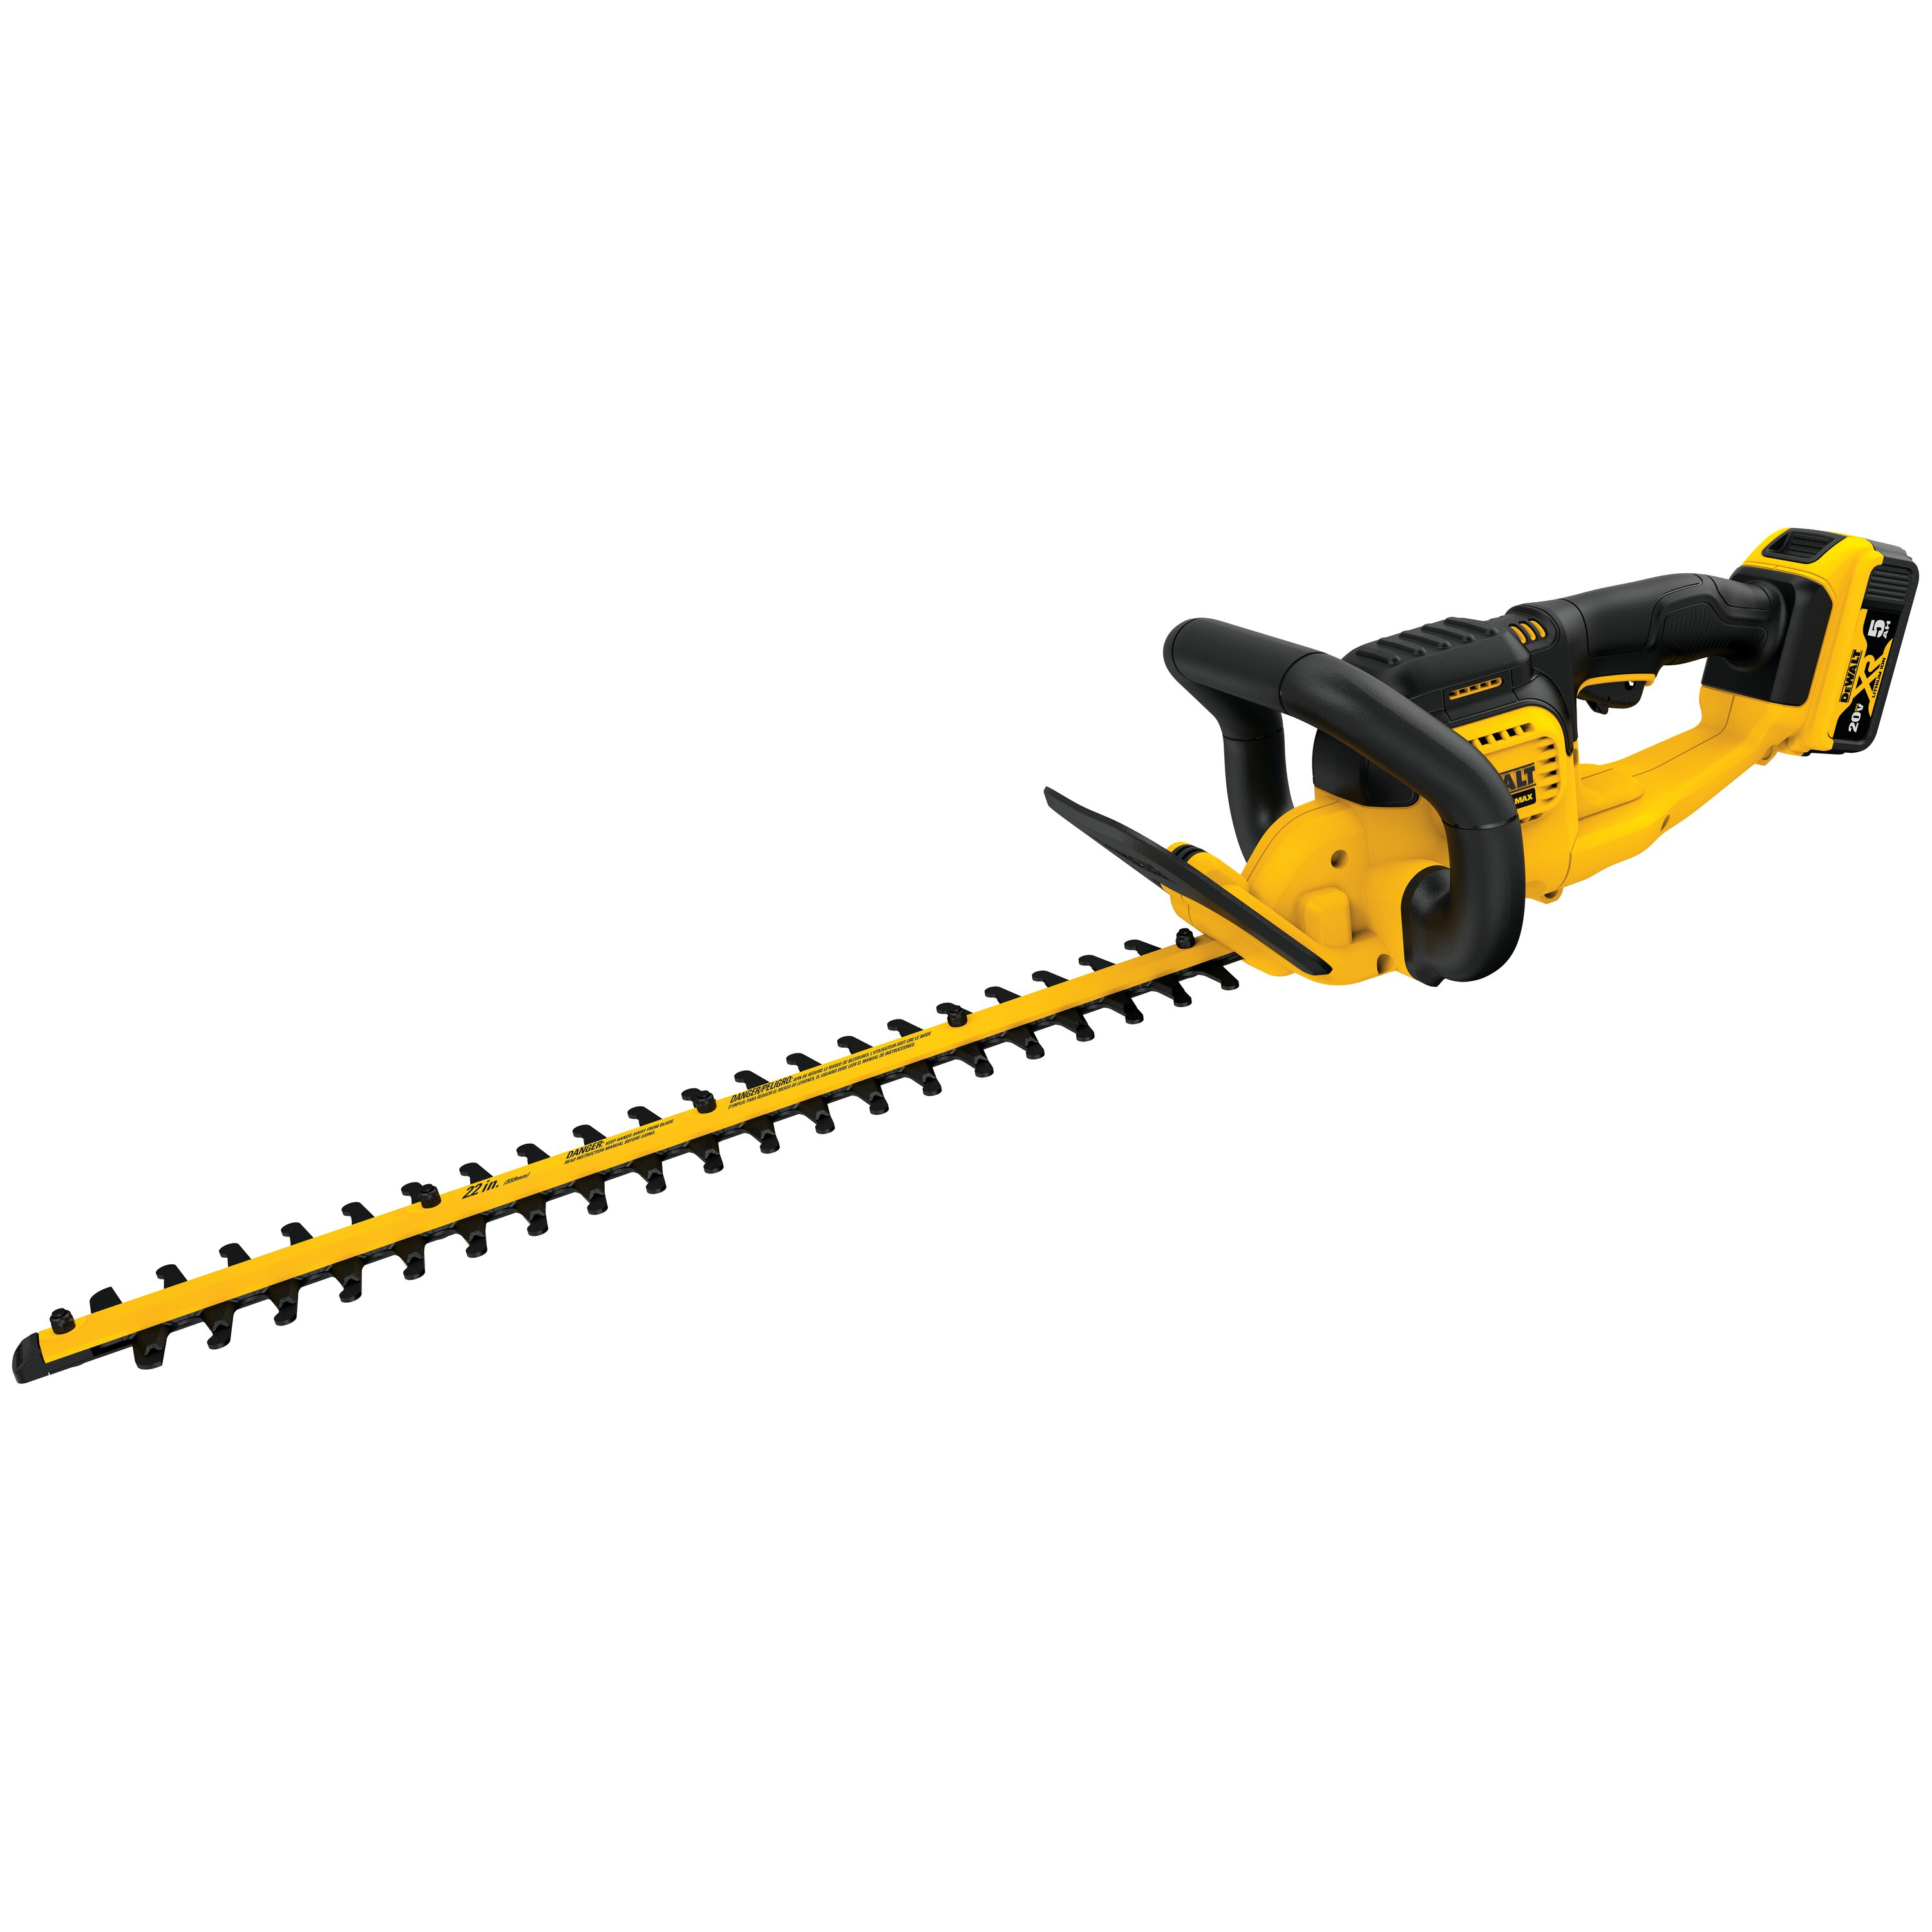 20V MAX* Lithium Ion Hedge Trimmer (5 0Ah)